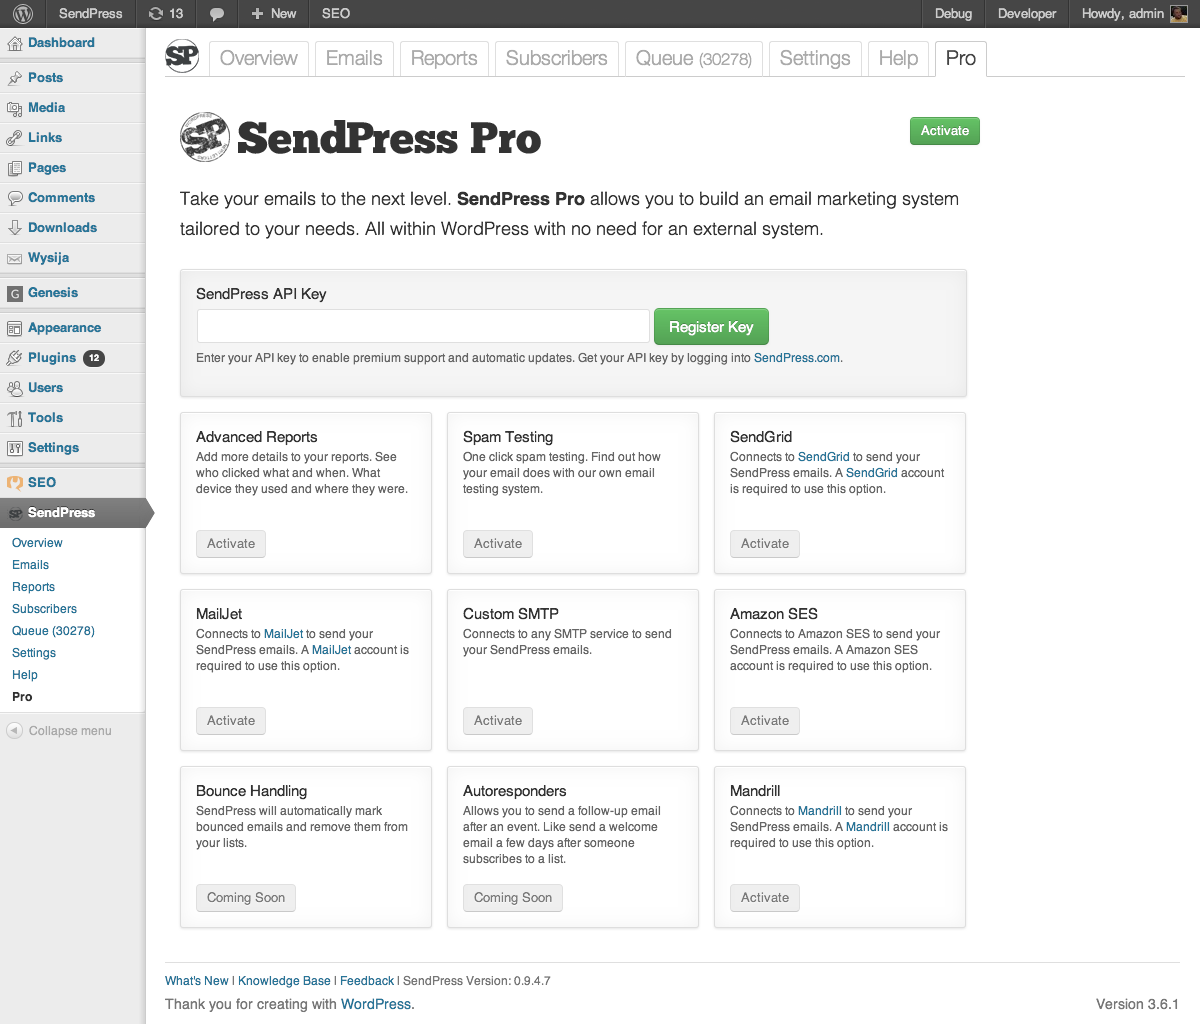 sendpress screenshot 15